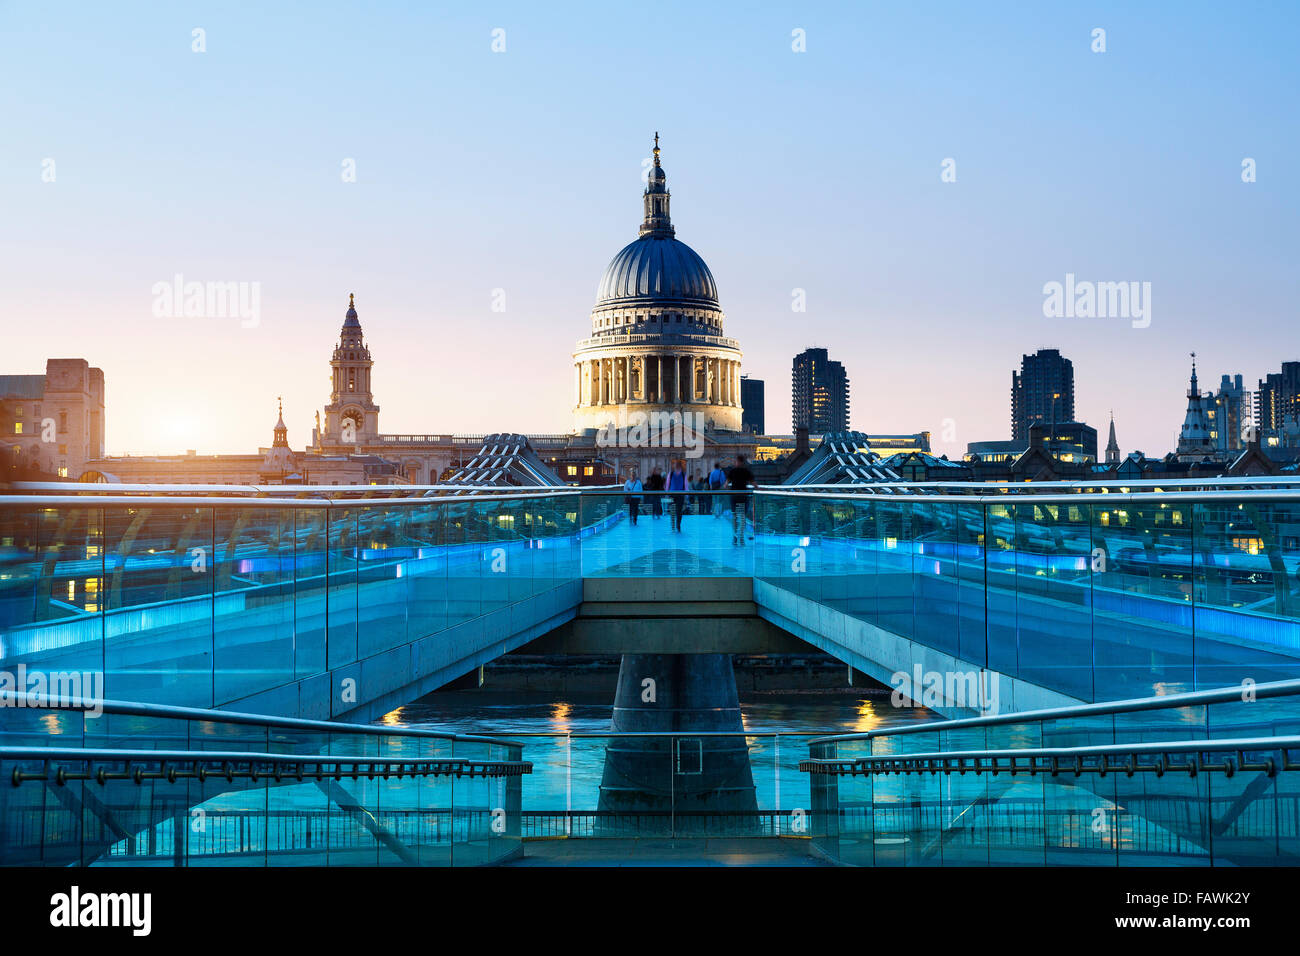 London, Millennium bridge illuminated - Stock Image